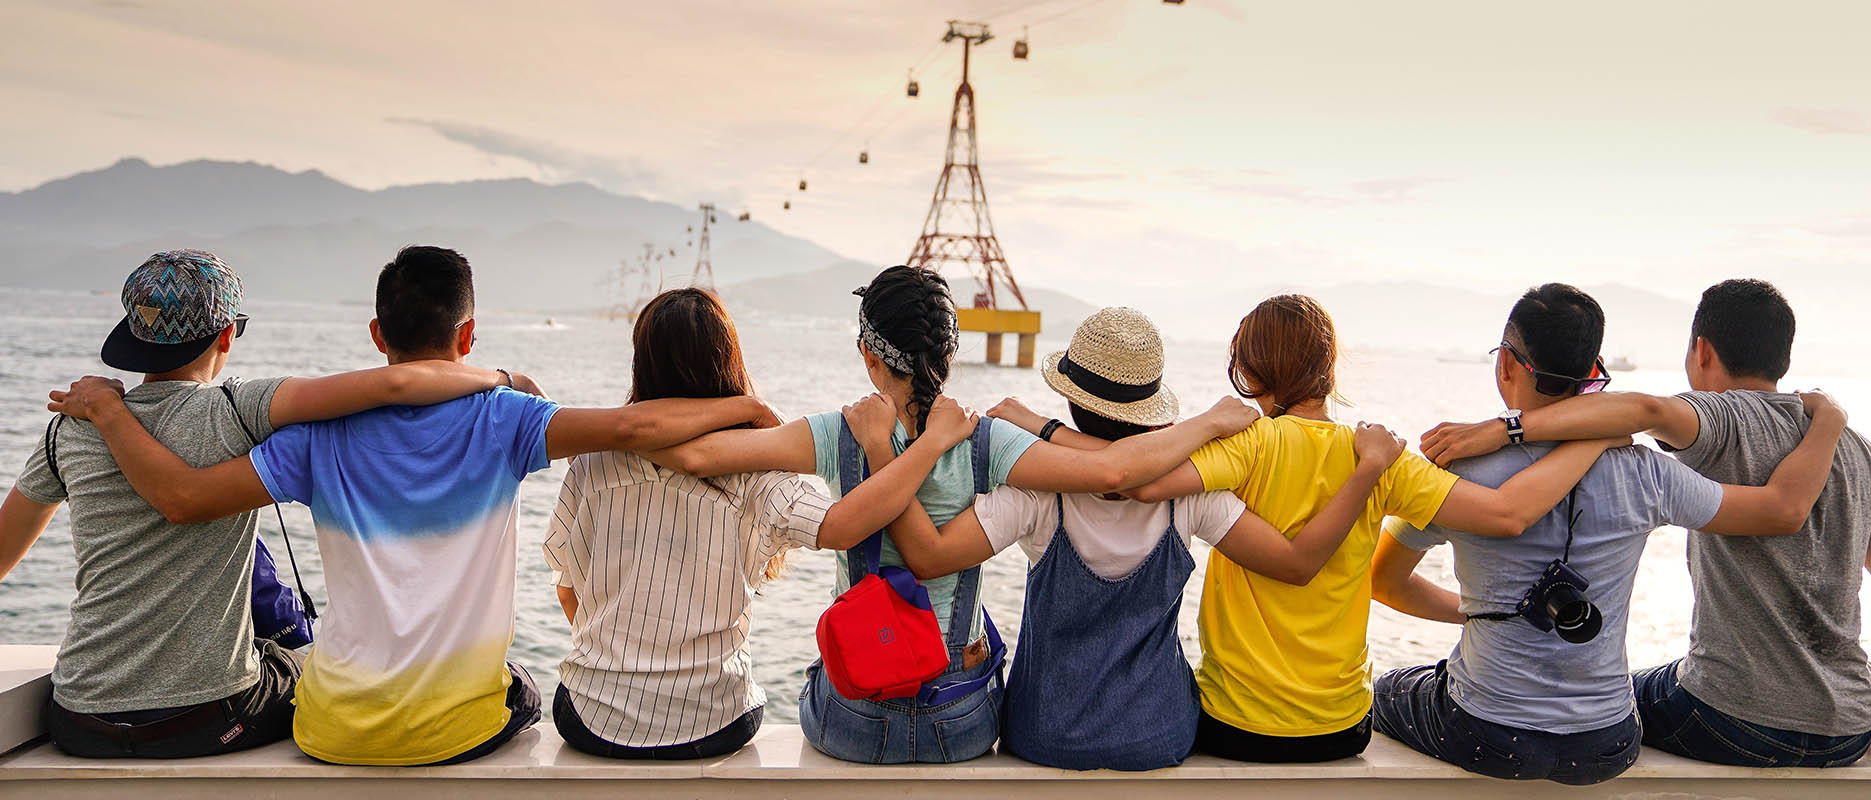 Images shows a group of people from behind, with their arms linked